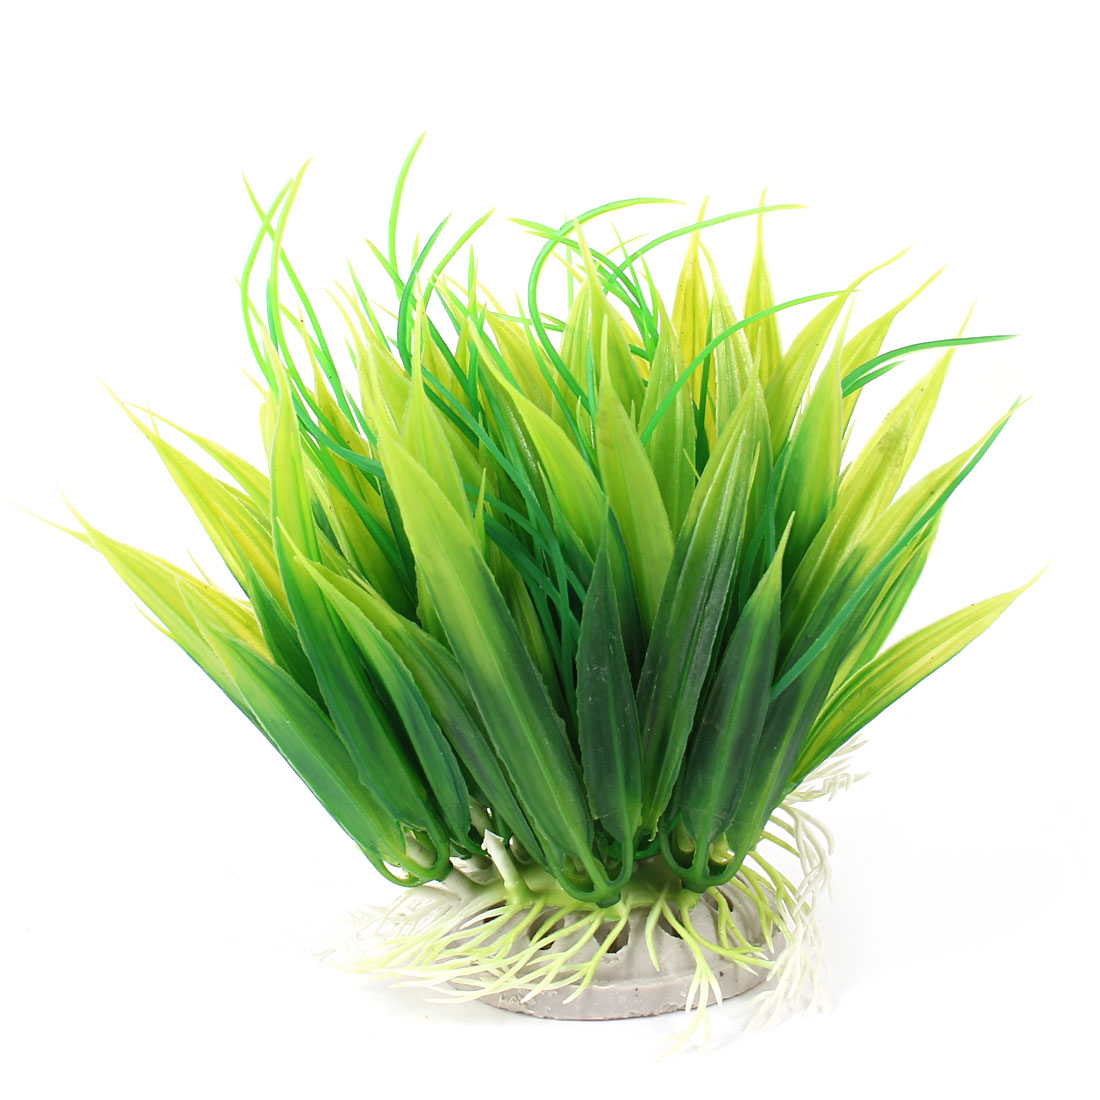 "Aquarium Fish Tank Ornament Landscaping Artificial Emulational Underwater Water Plant Grass Decor Green 5.5"" Height"